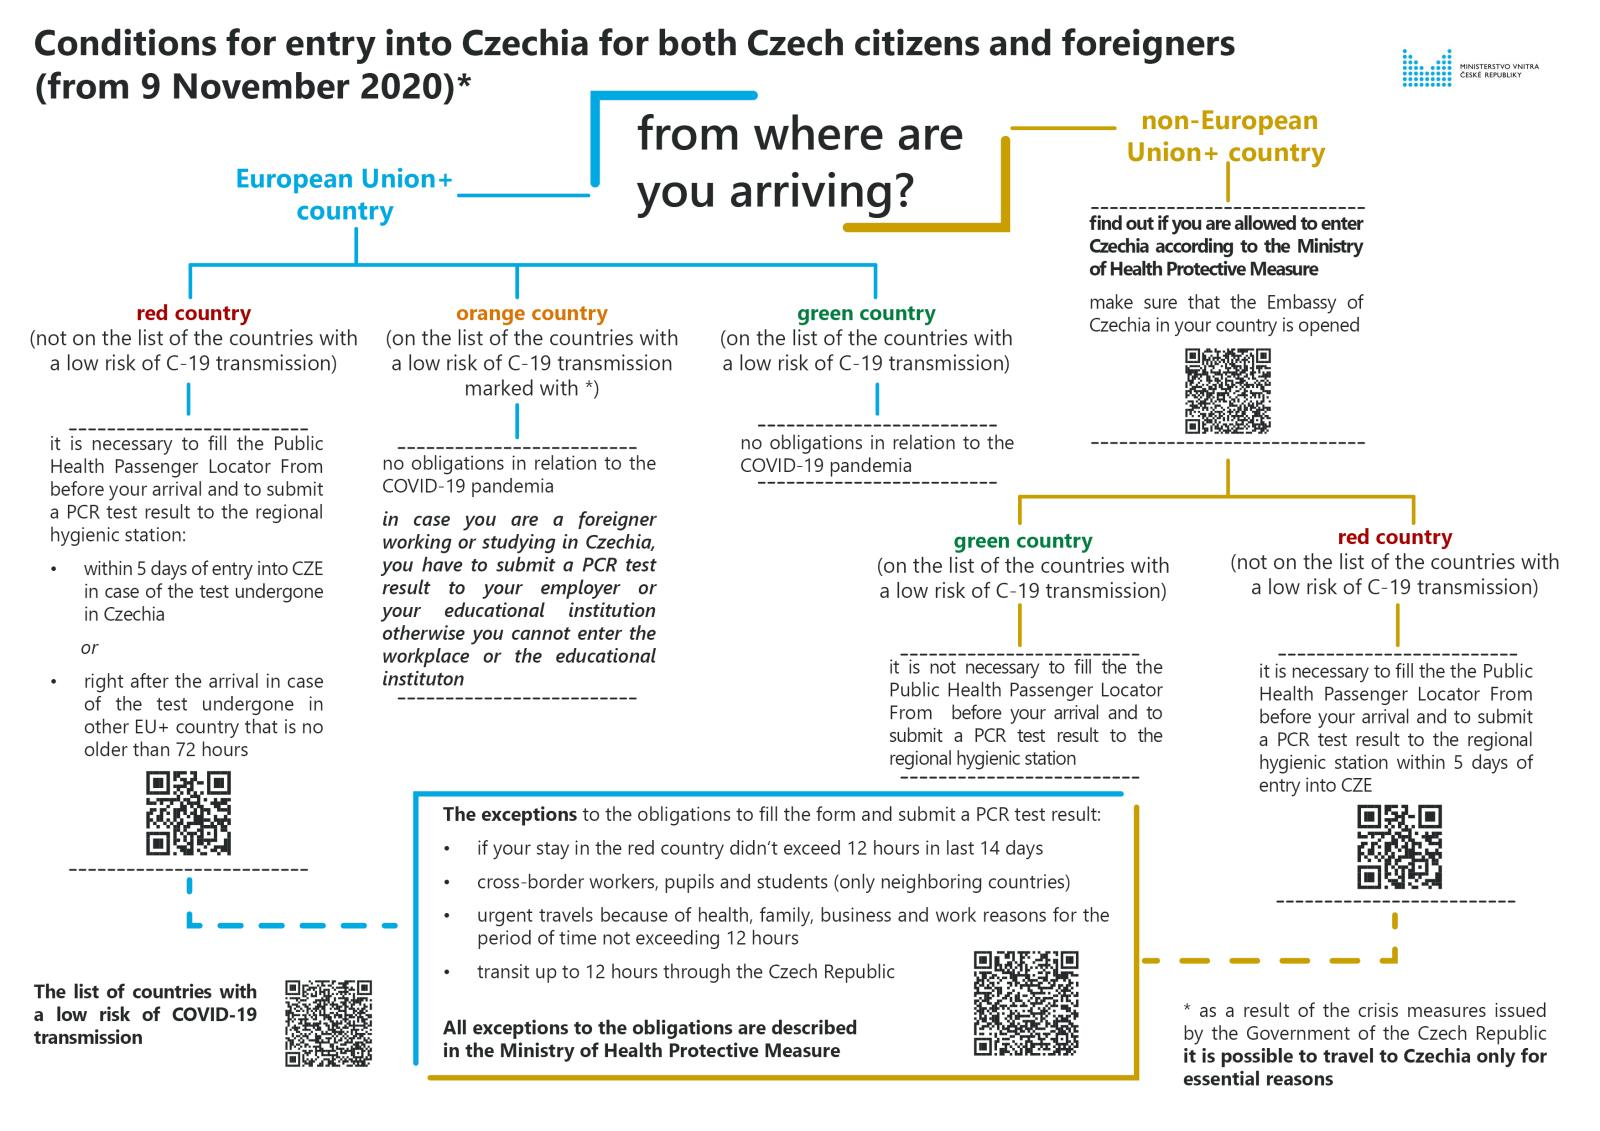 Conditions_for_entry_into_CZ_for_Czech_and_foreigners_from_November 9th_2020_-_20201105.jpg